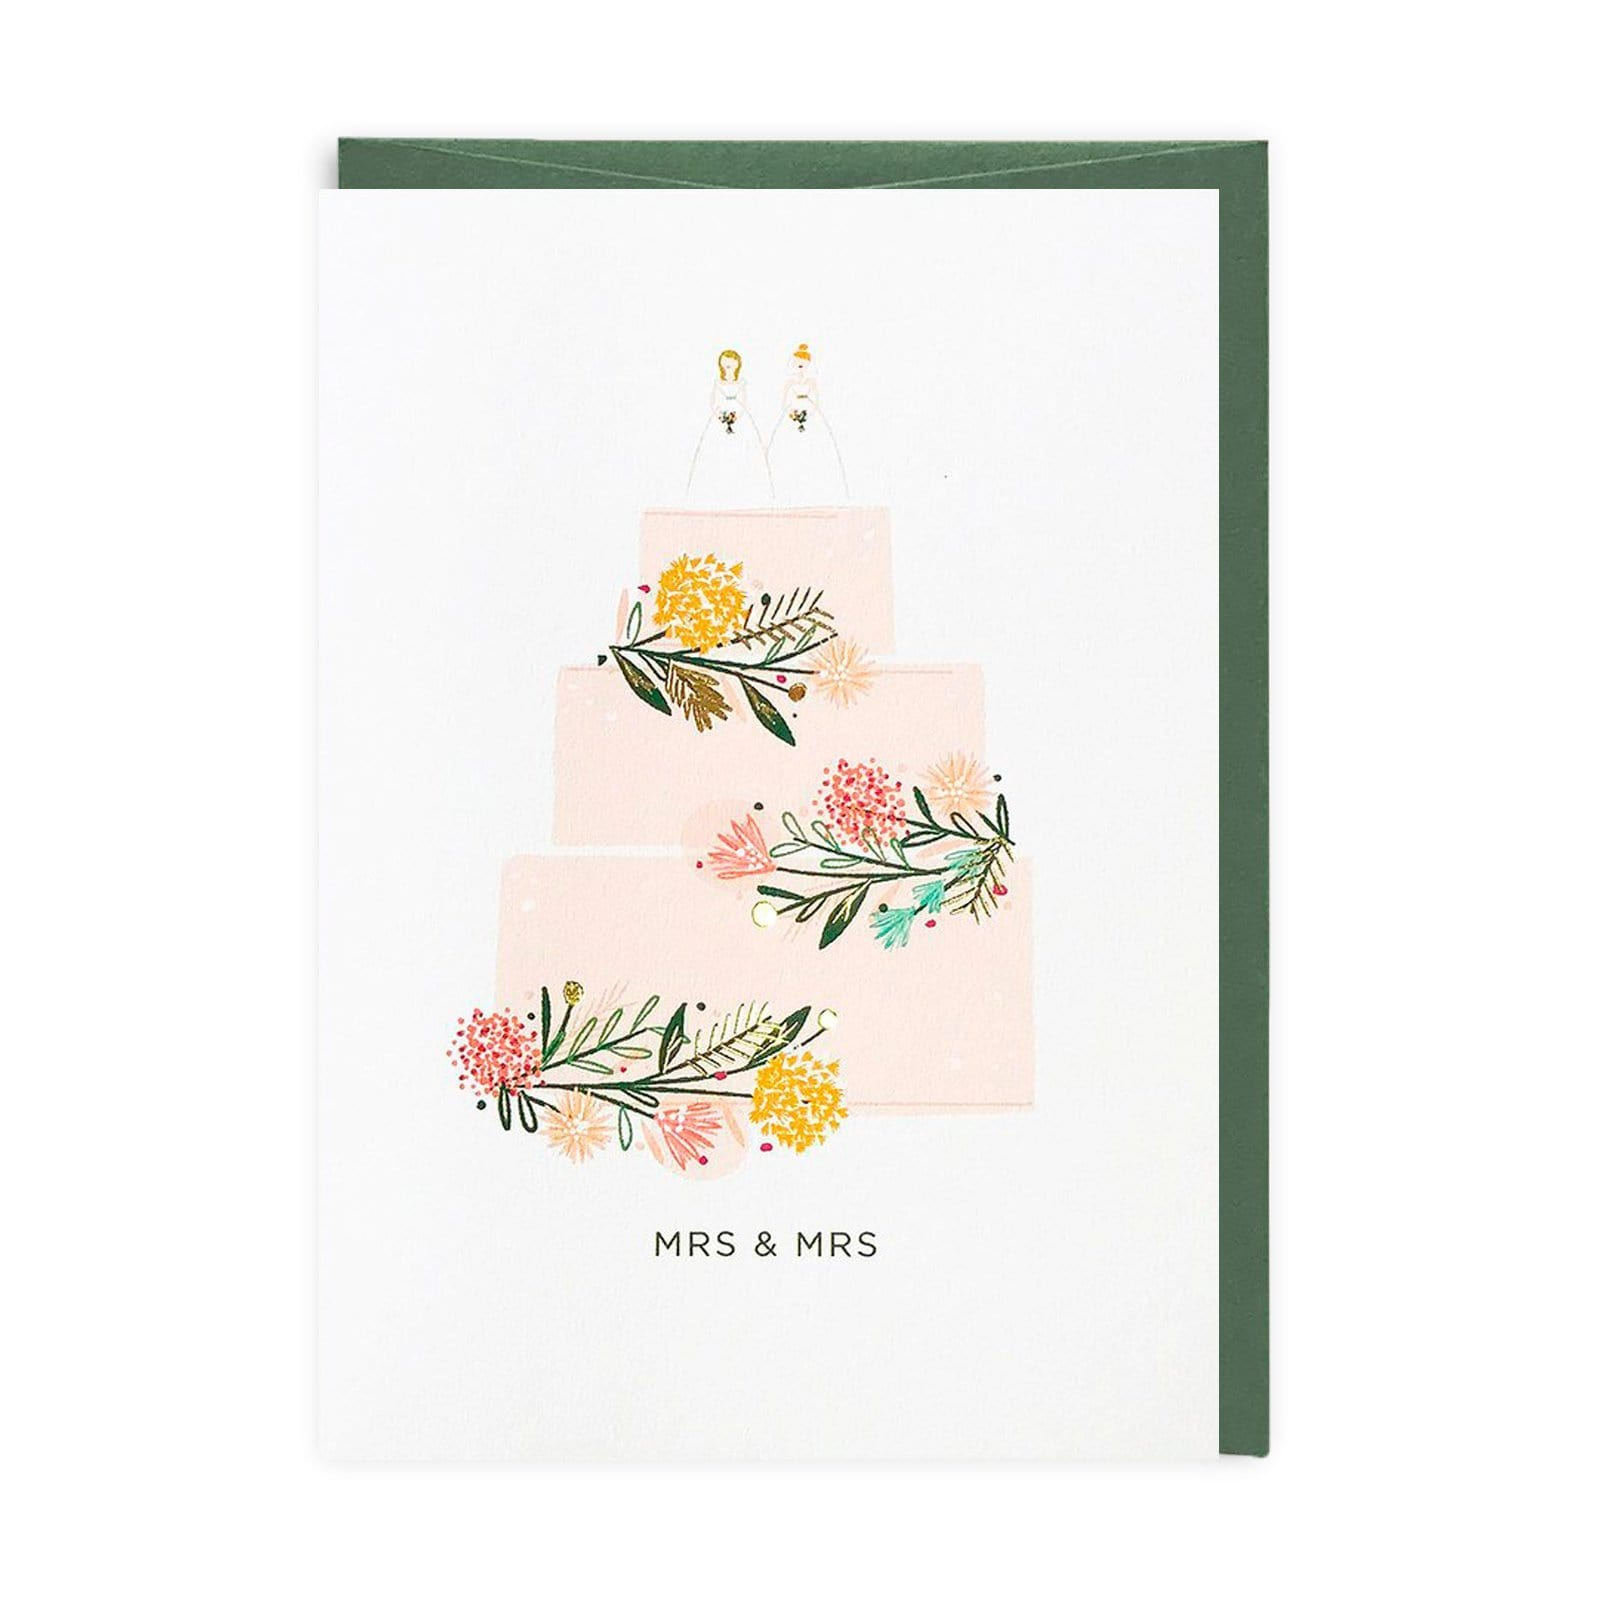 Mrs & Mrs Greeting Card